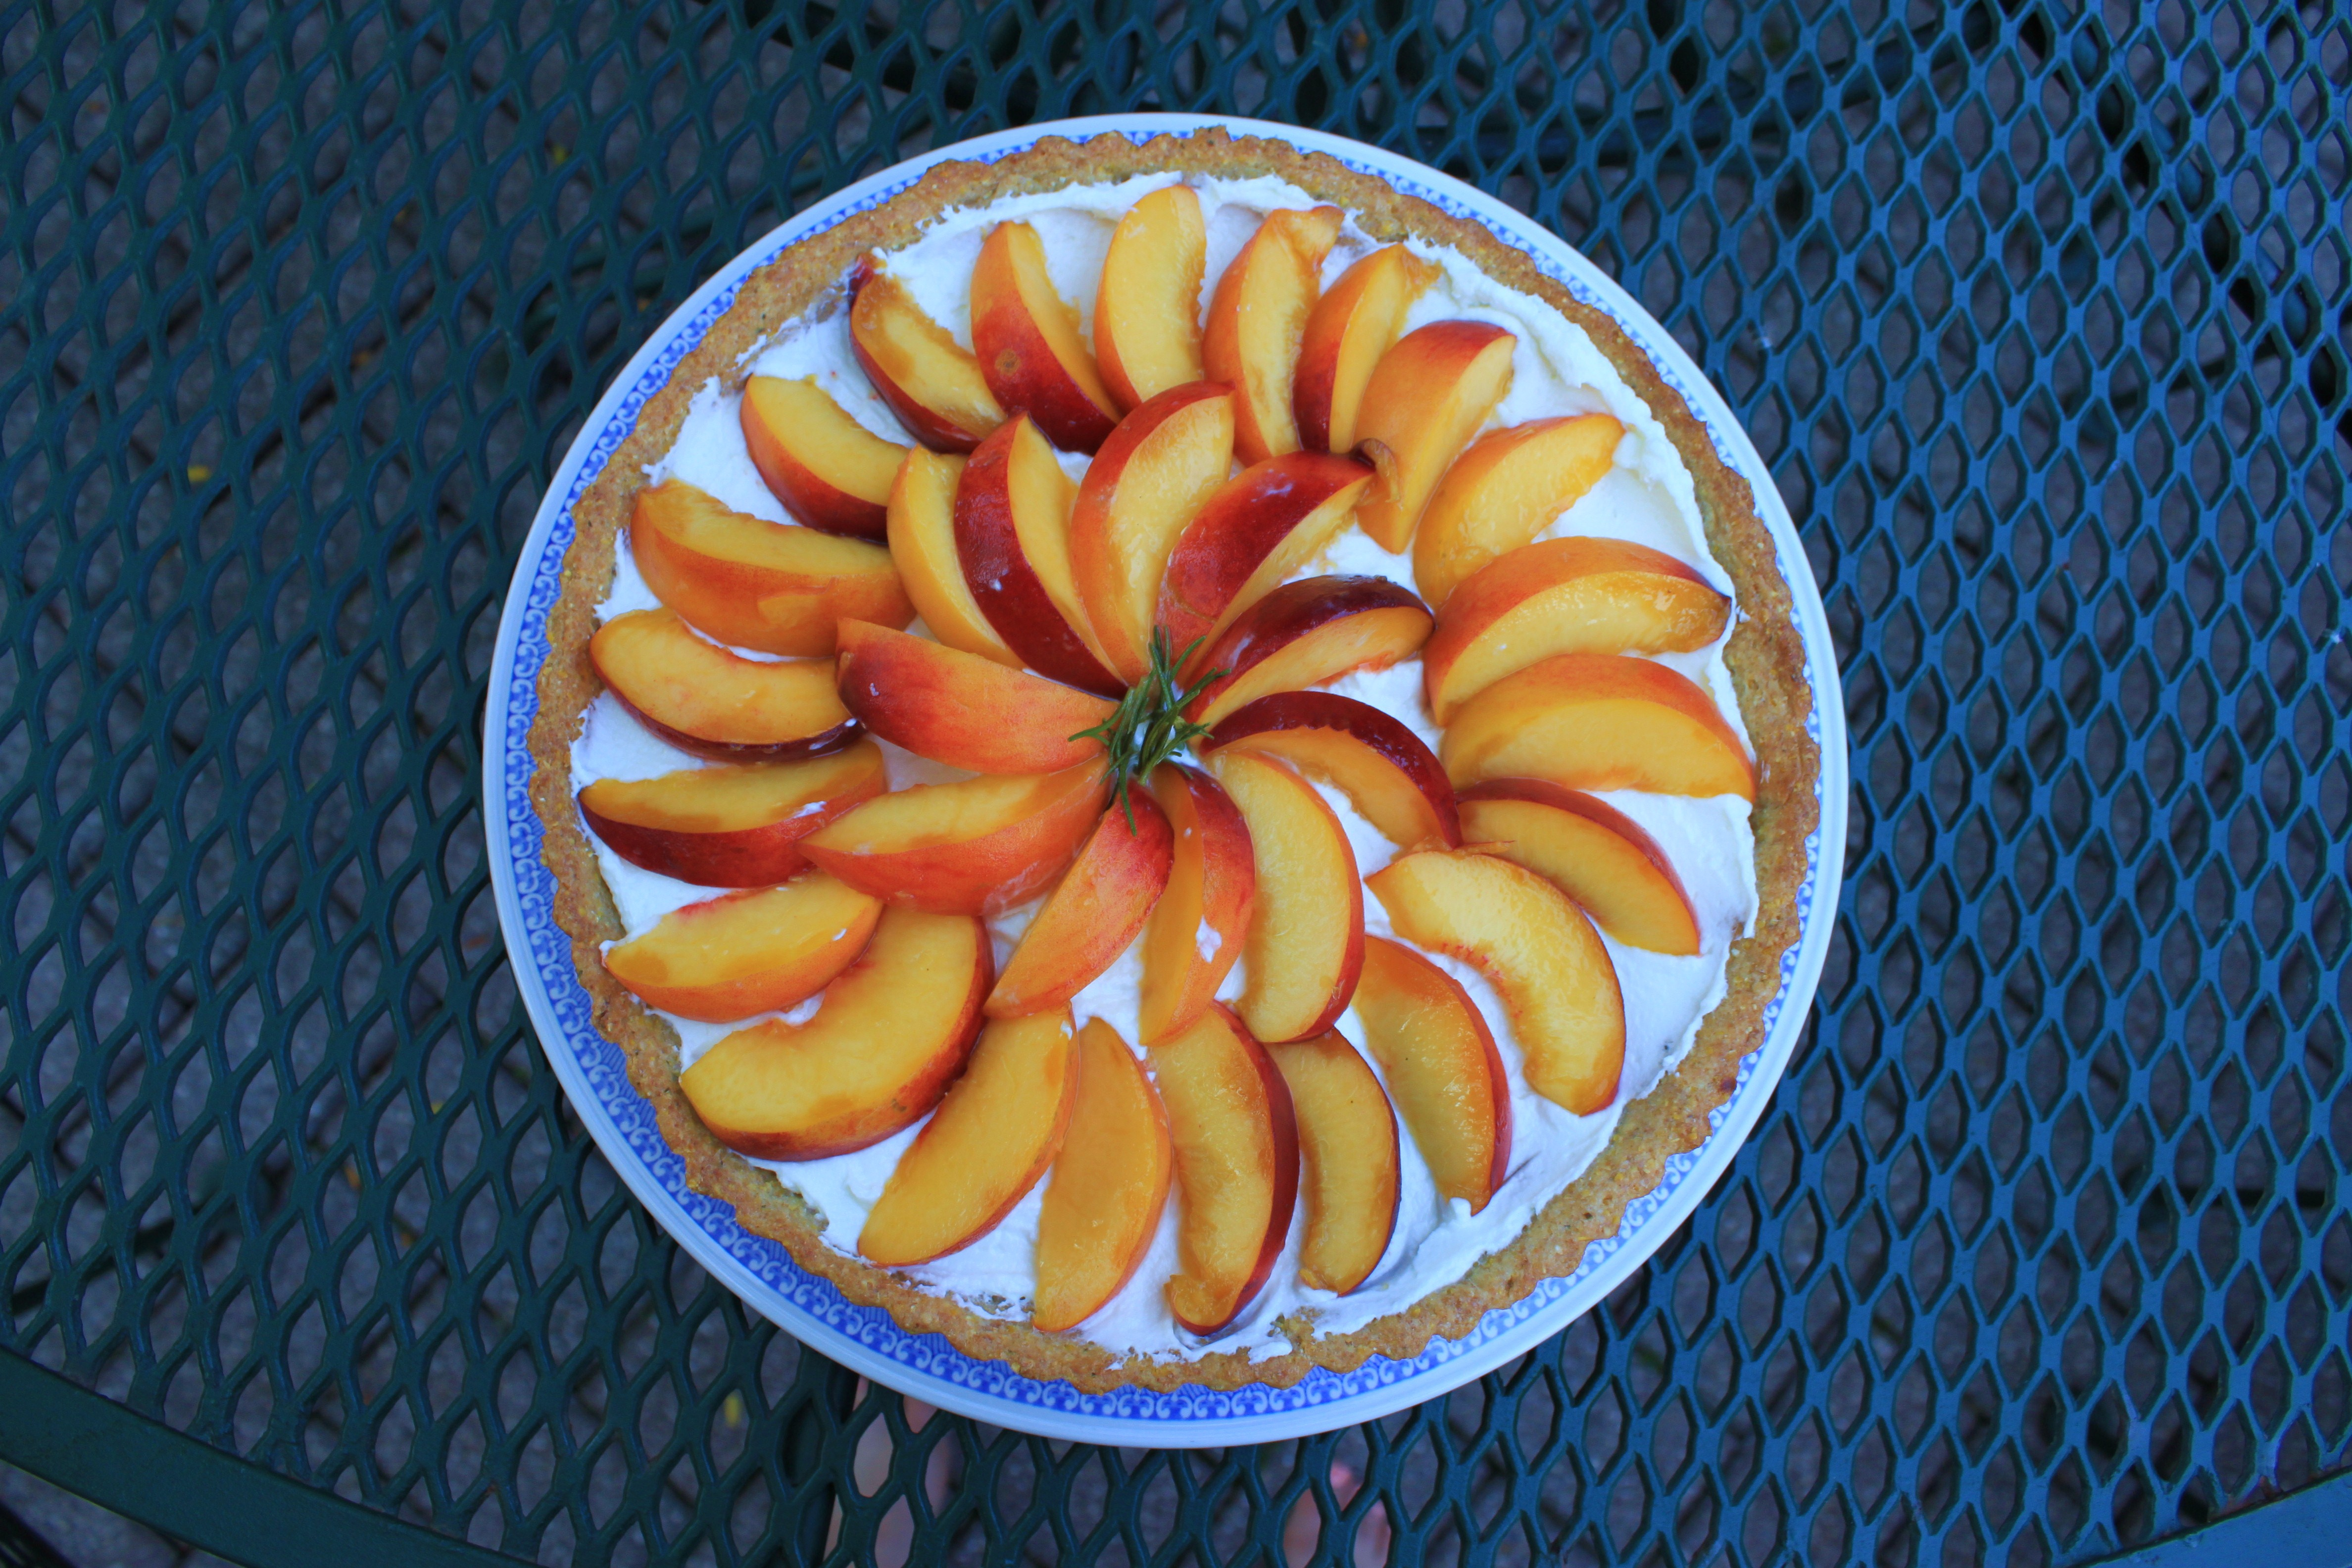 Peach and Goat Cheese Tart with Rosemary Cornmeal Crust